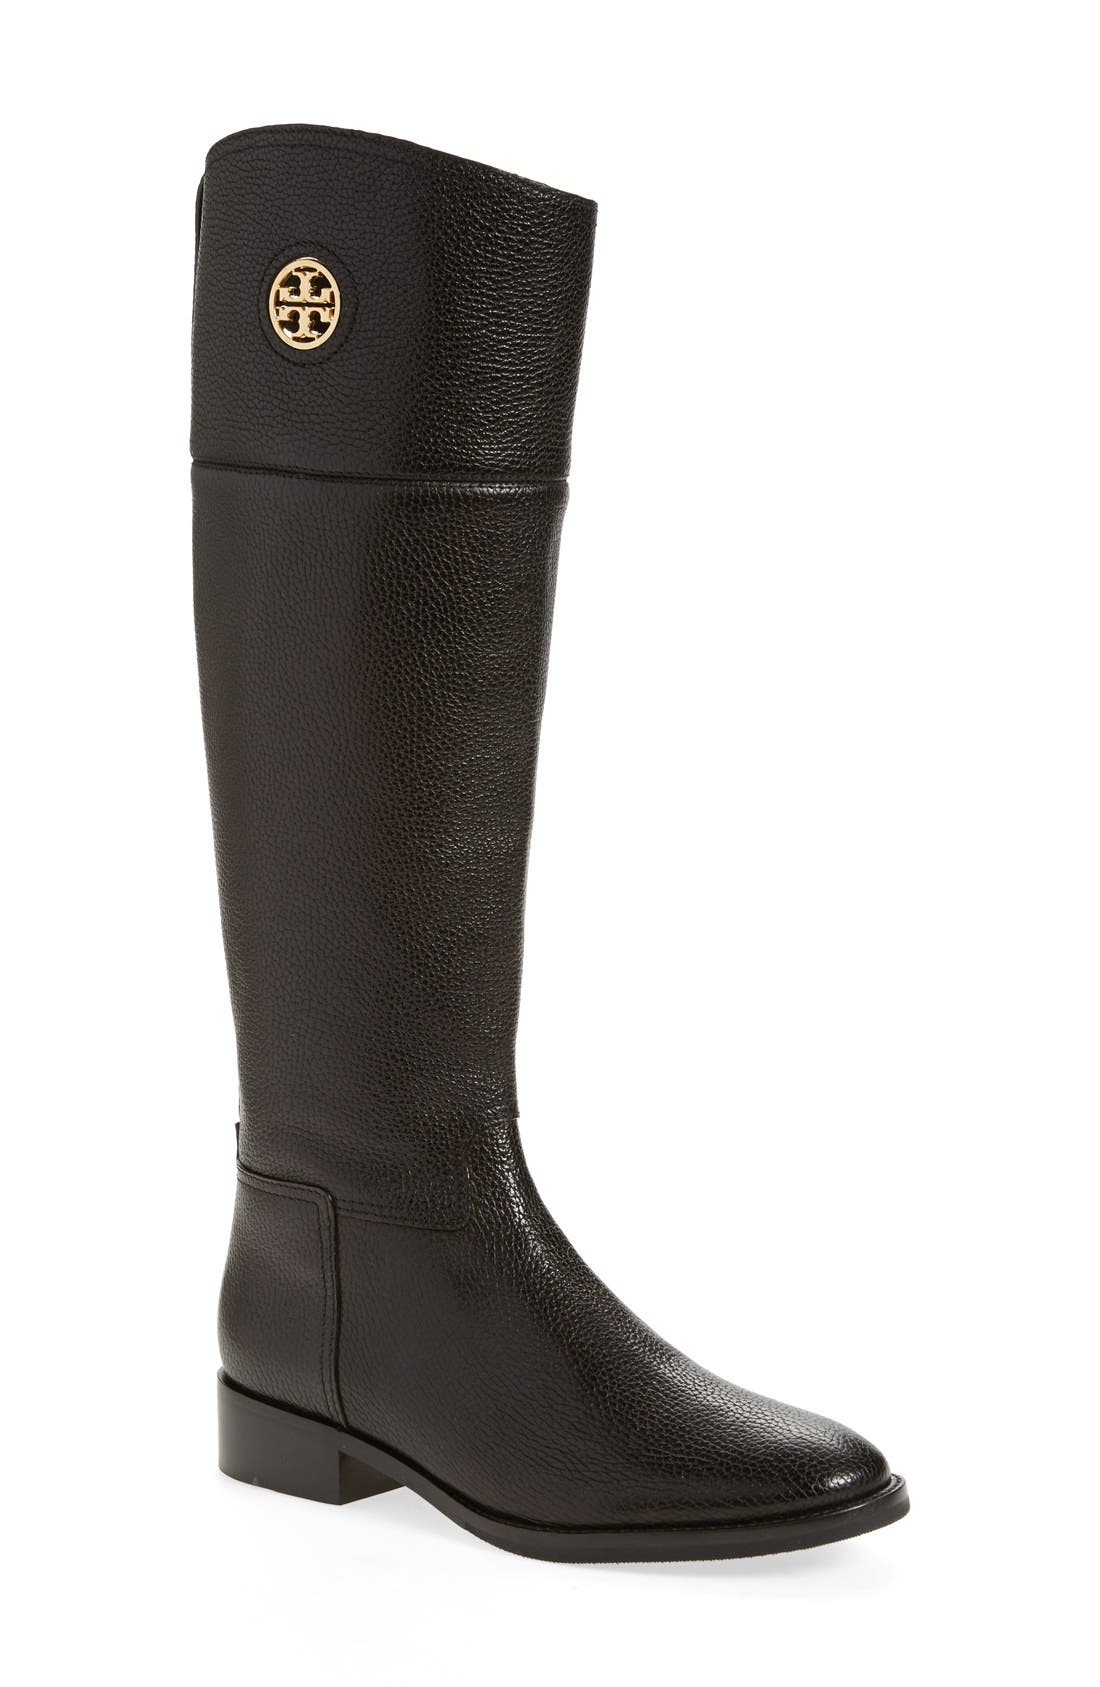 Alternate Image 1 Selected - Tory Burch 'Junction' Riding Boot (Women) (Wide Calf)